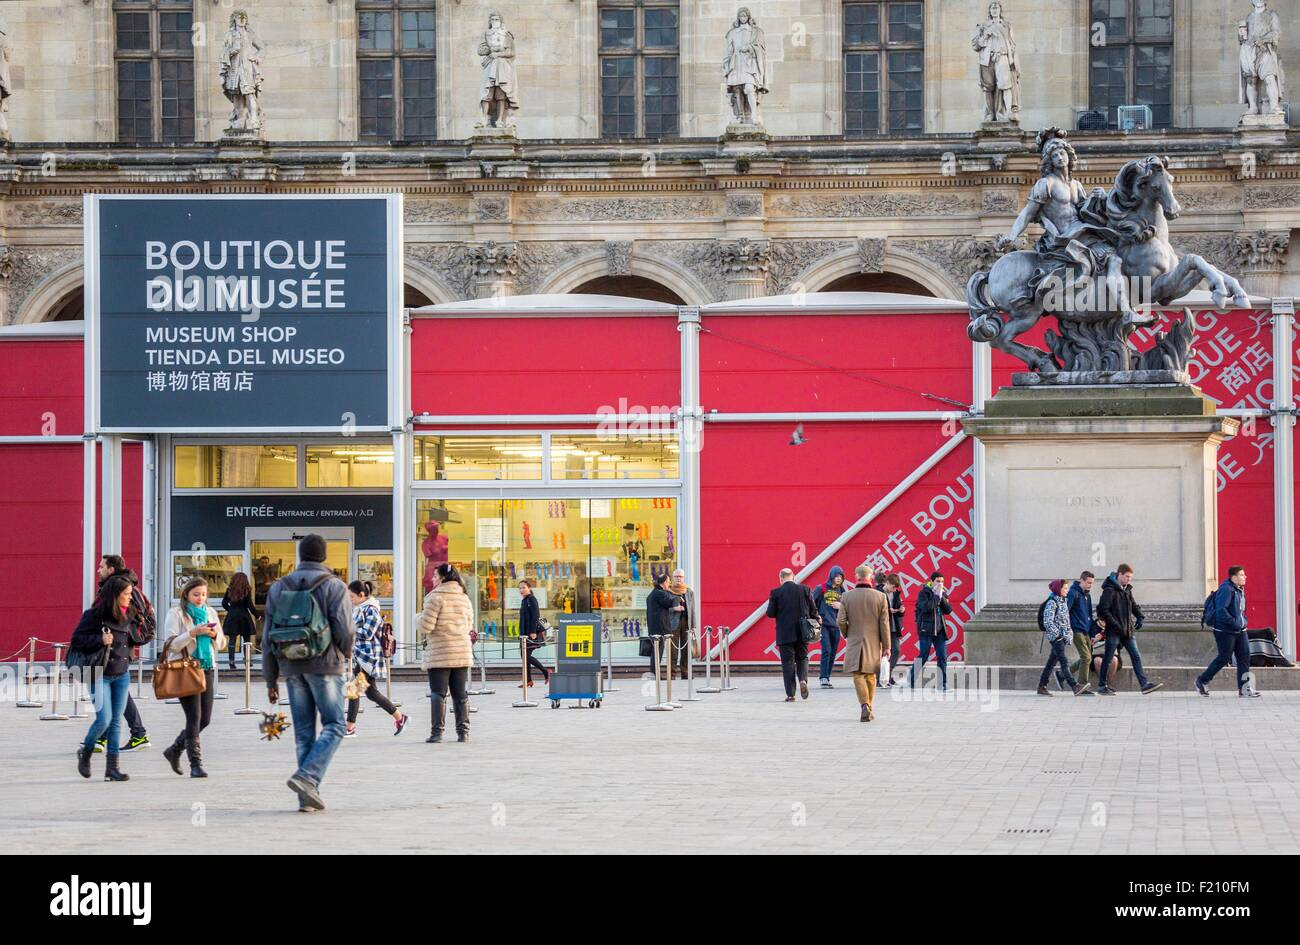 France, Paris, the temporary museum shop of the Louvre - Stock Image